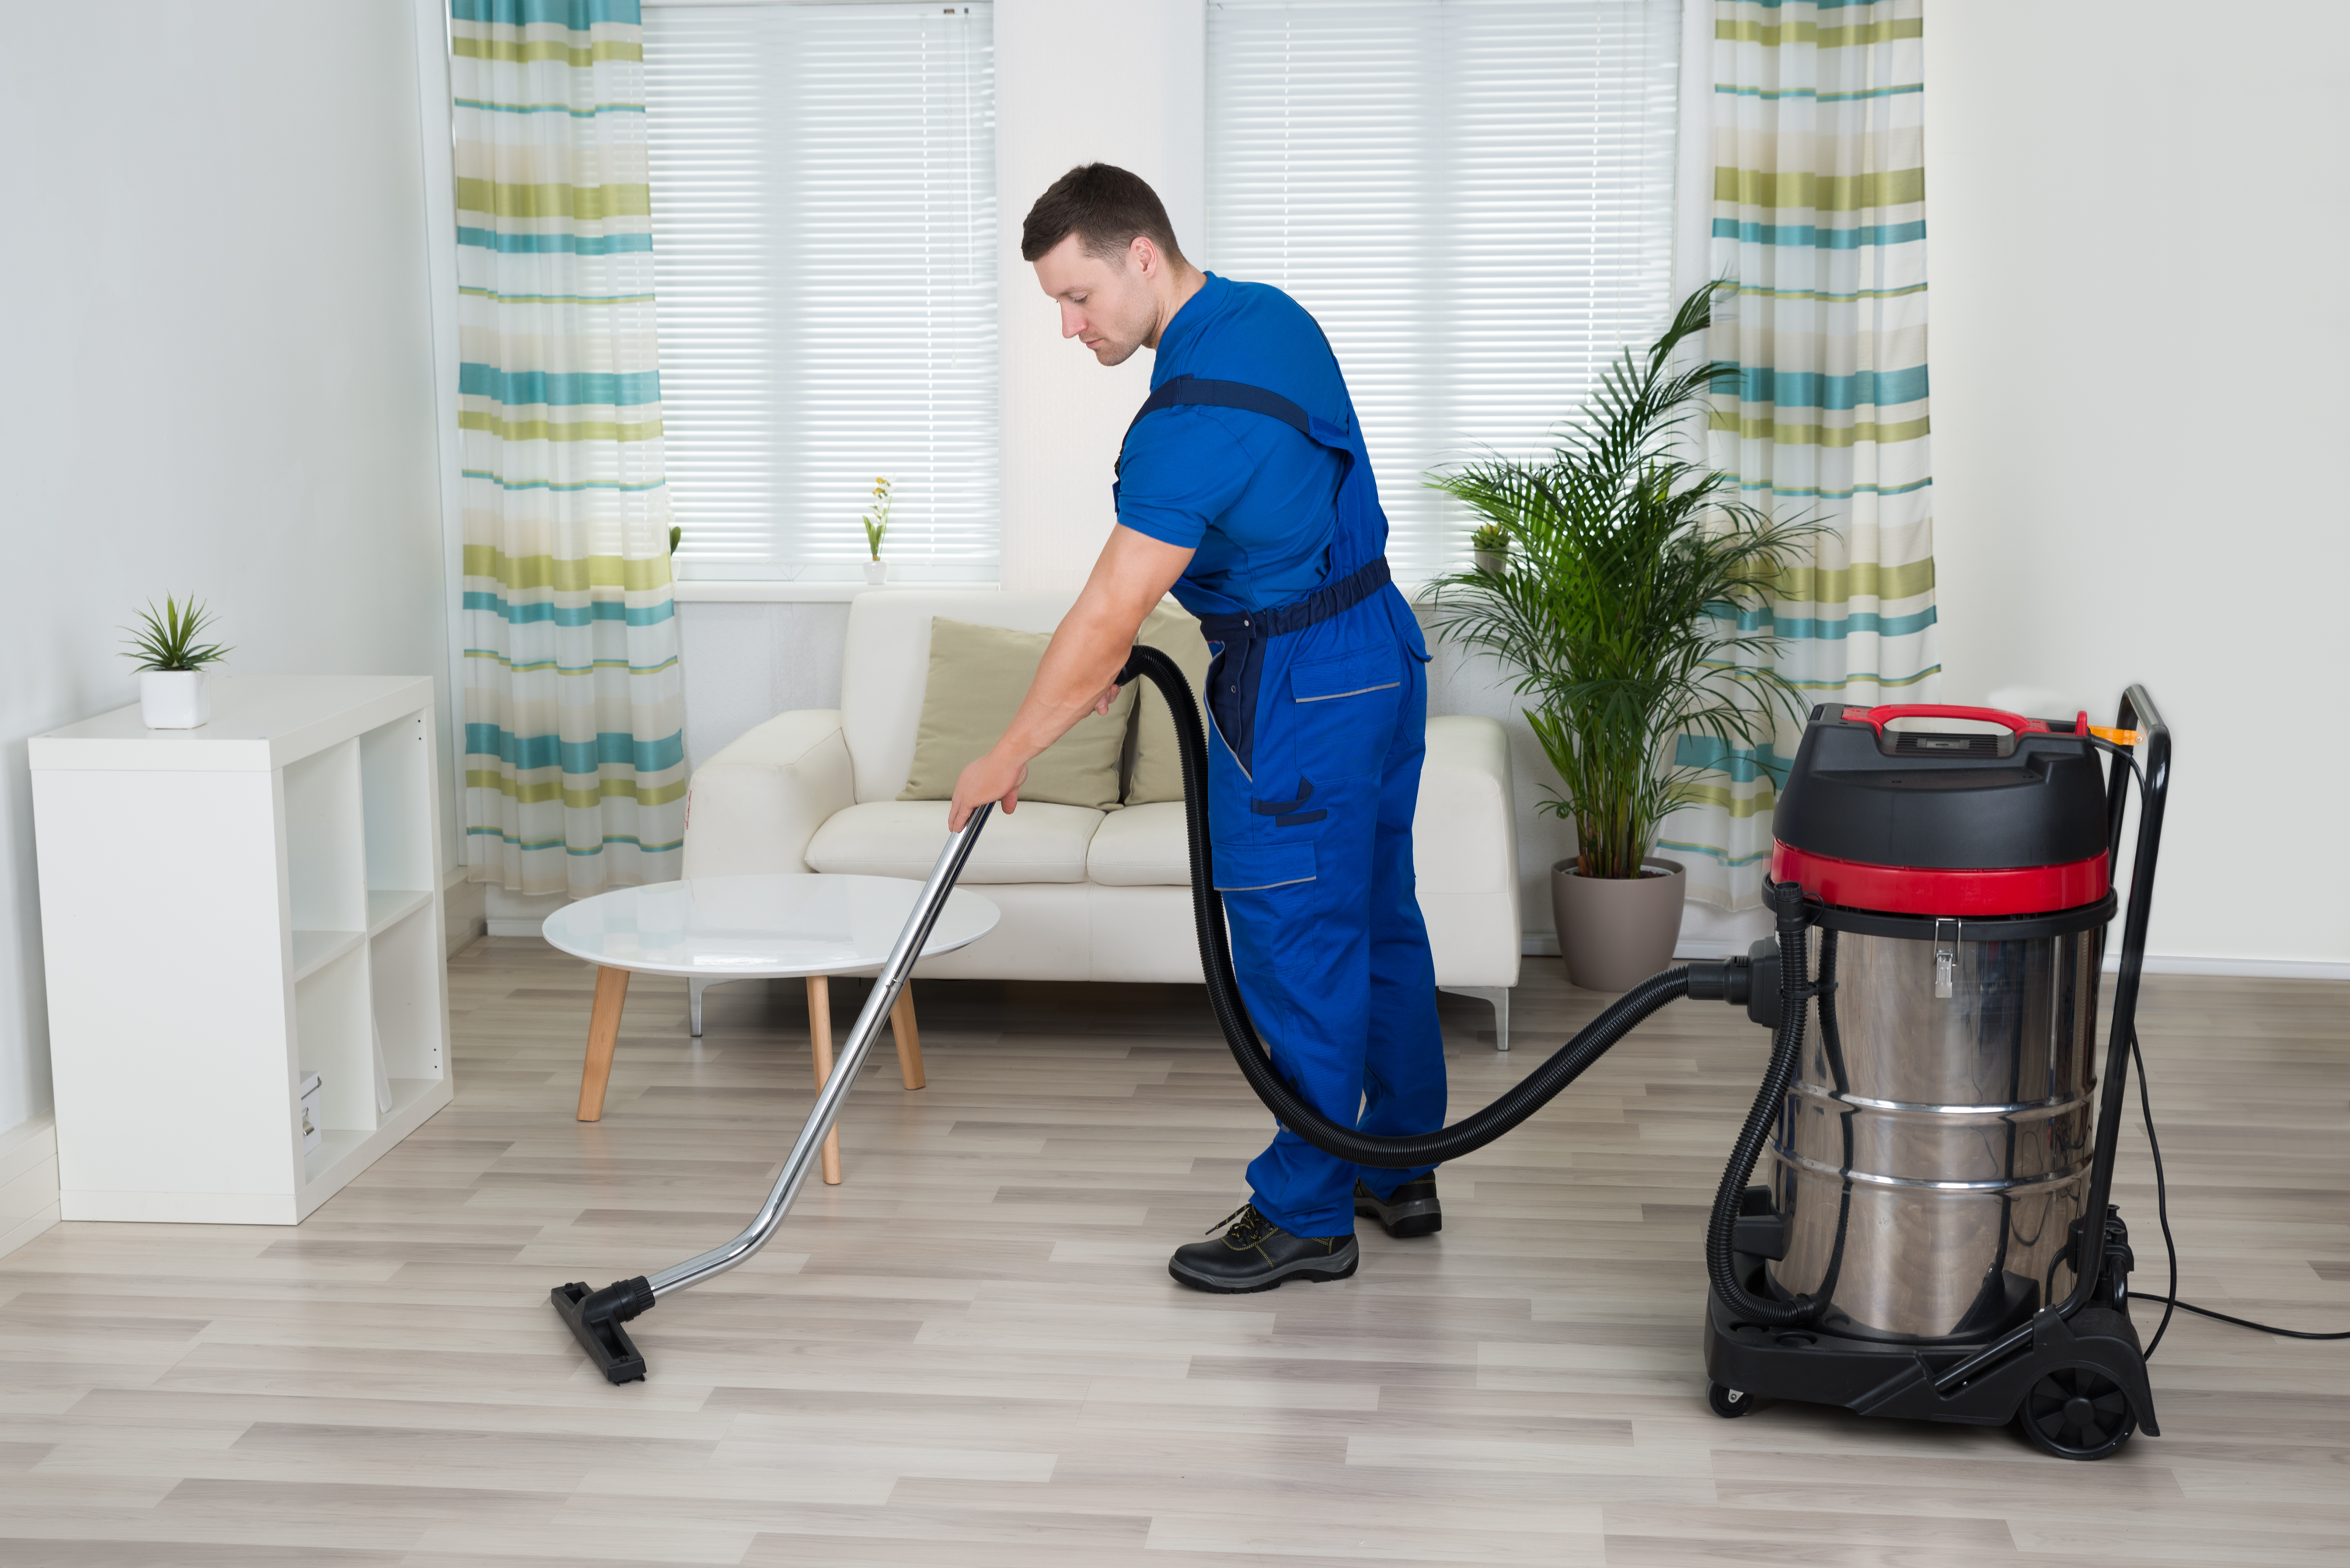 Blog fremont carpet cleaning ensure you make sure you use recommended rug cleaning products even though there are various do it yourself carpet cleaning techniques you solutioingenieria Images